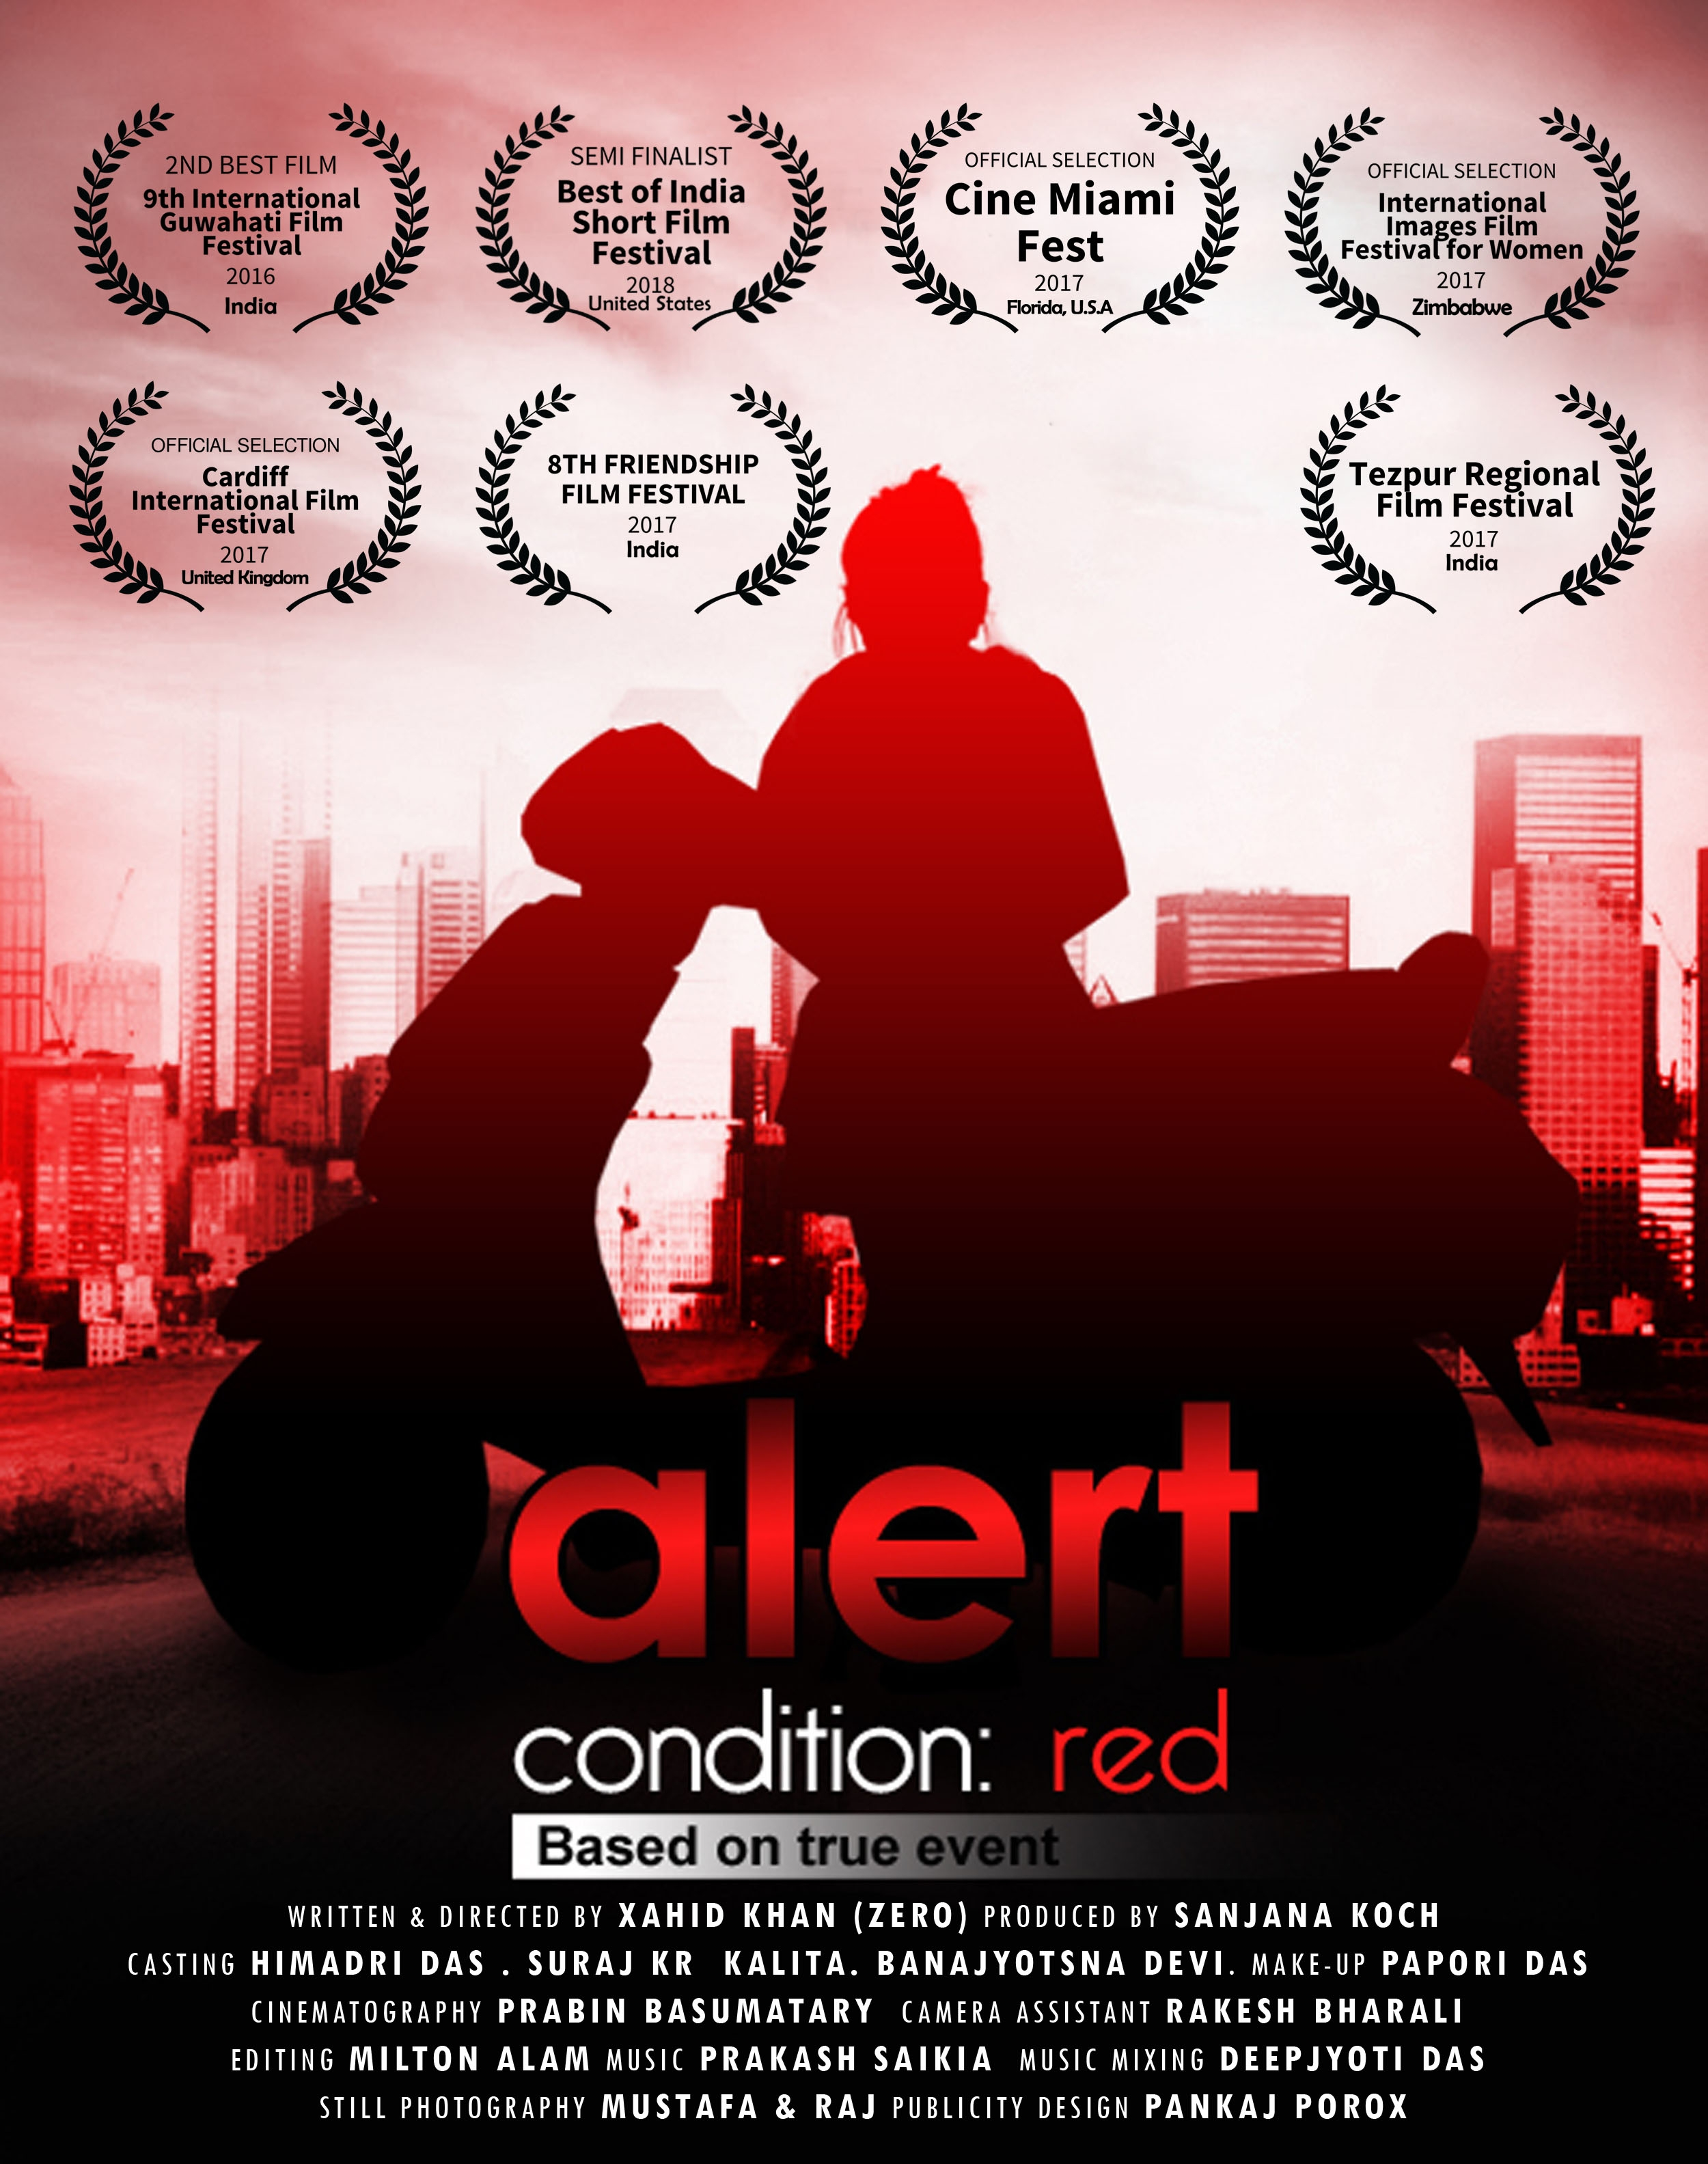 Alert-Condition:Red